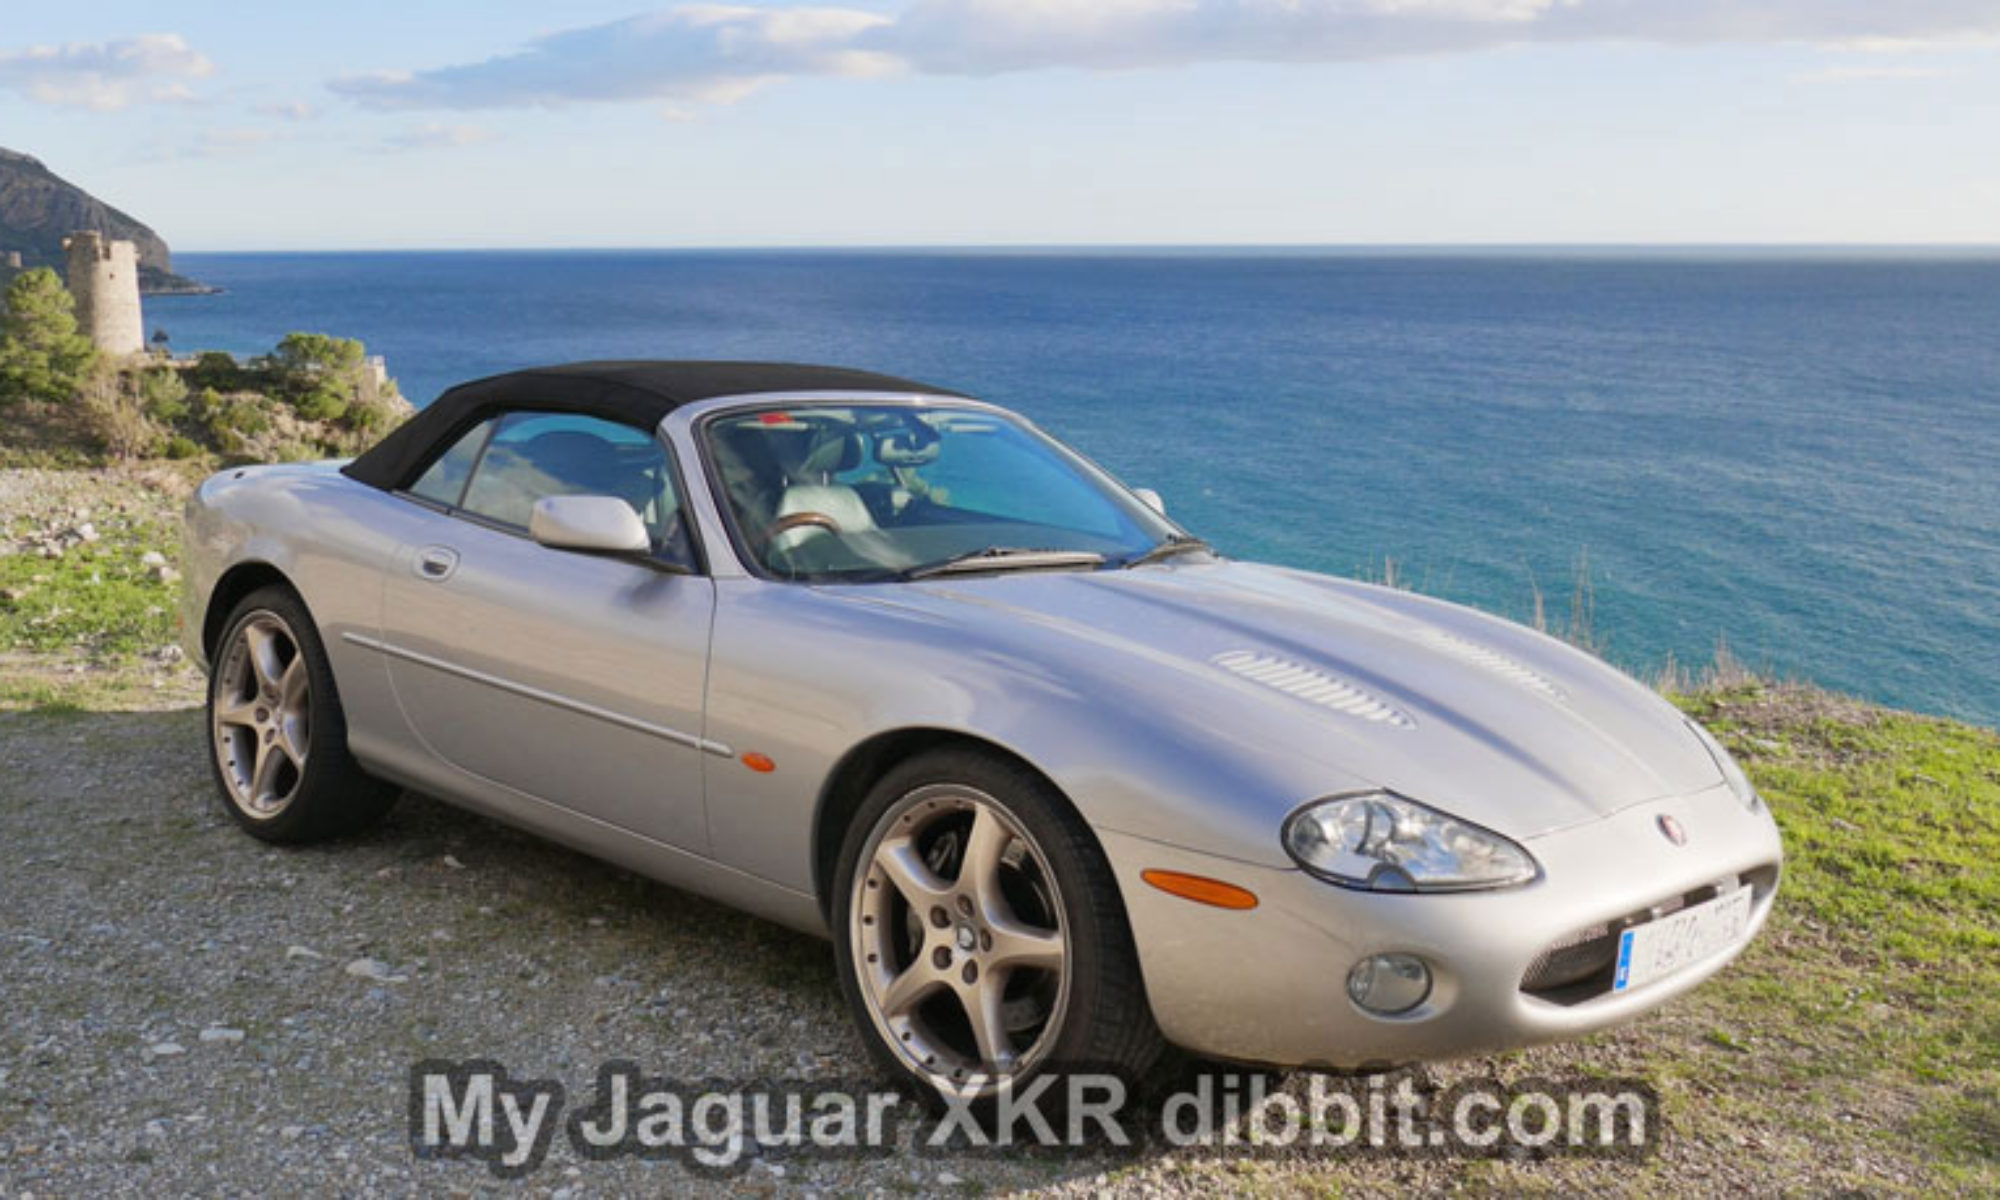 My Jaguar XKR